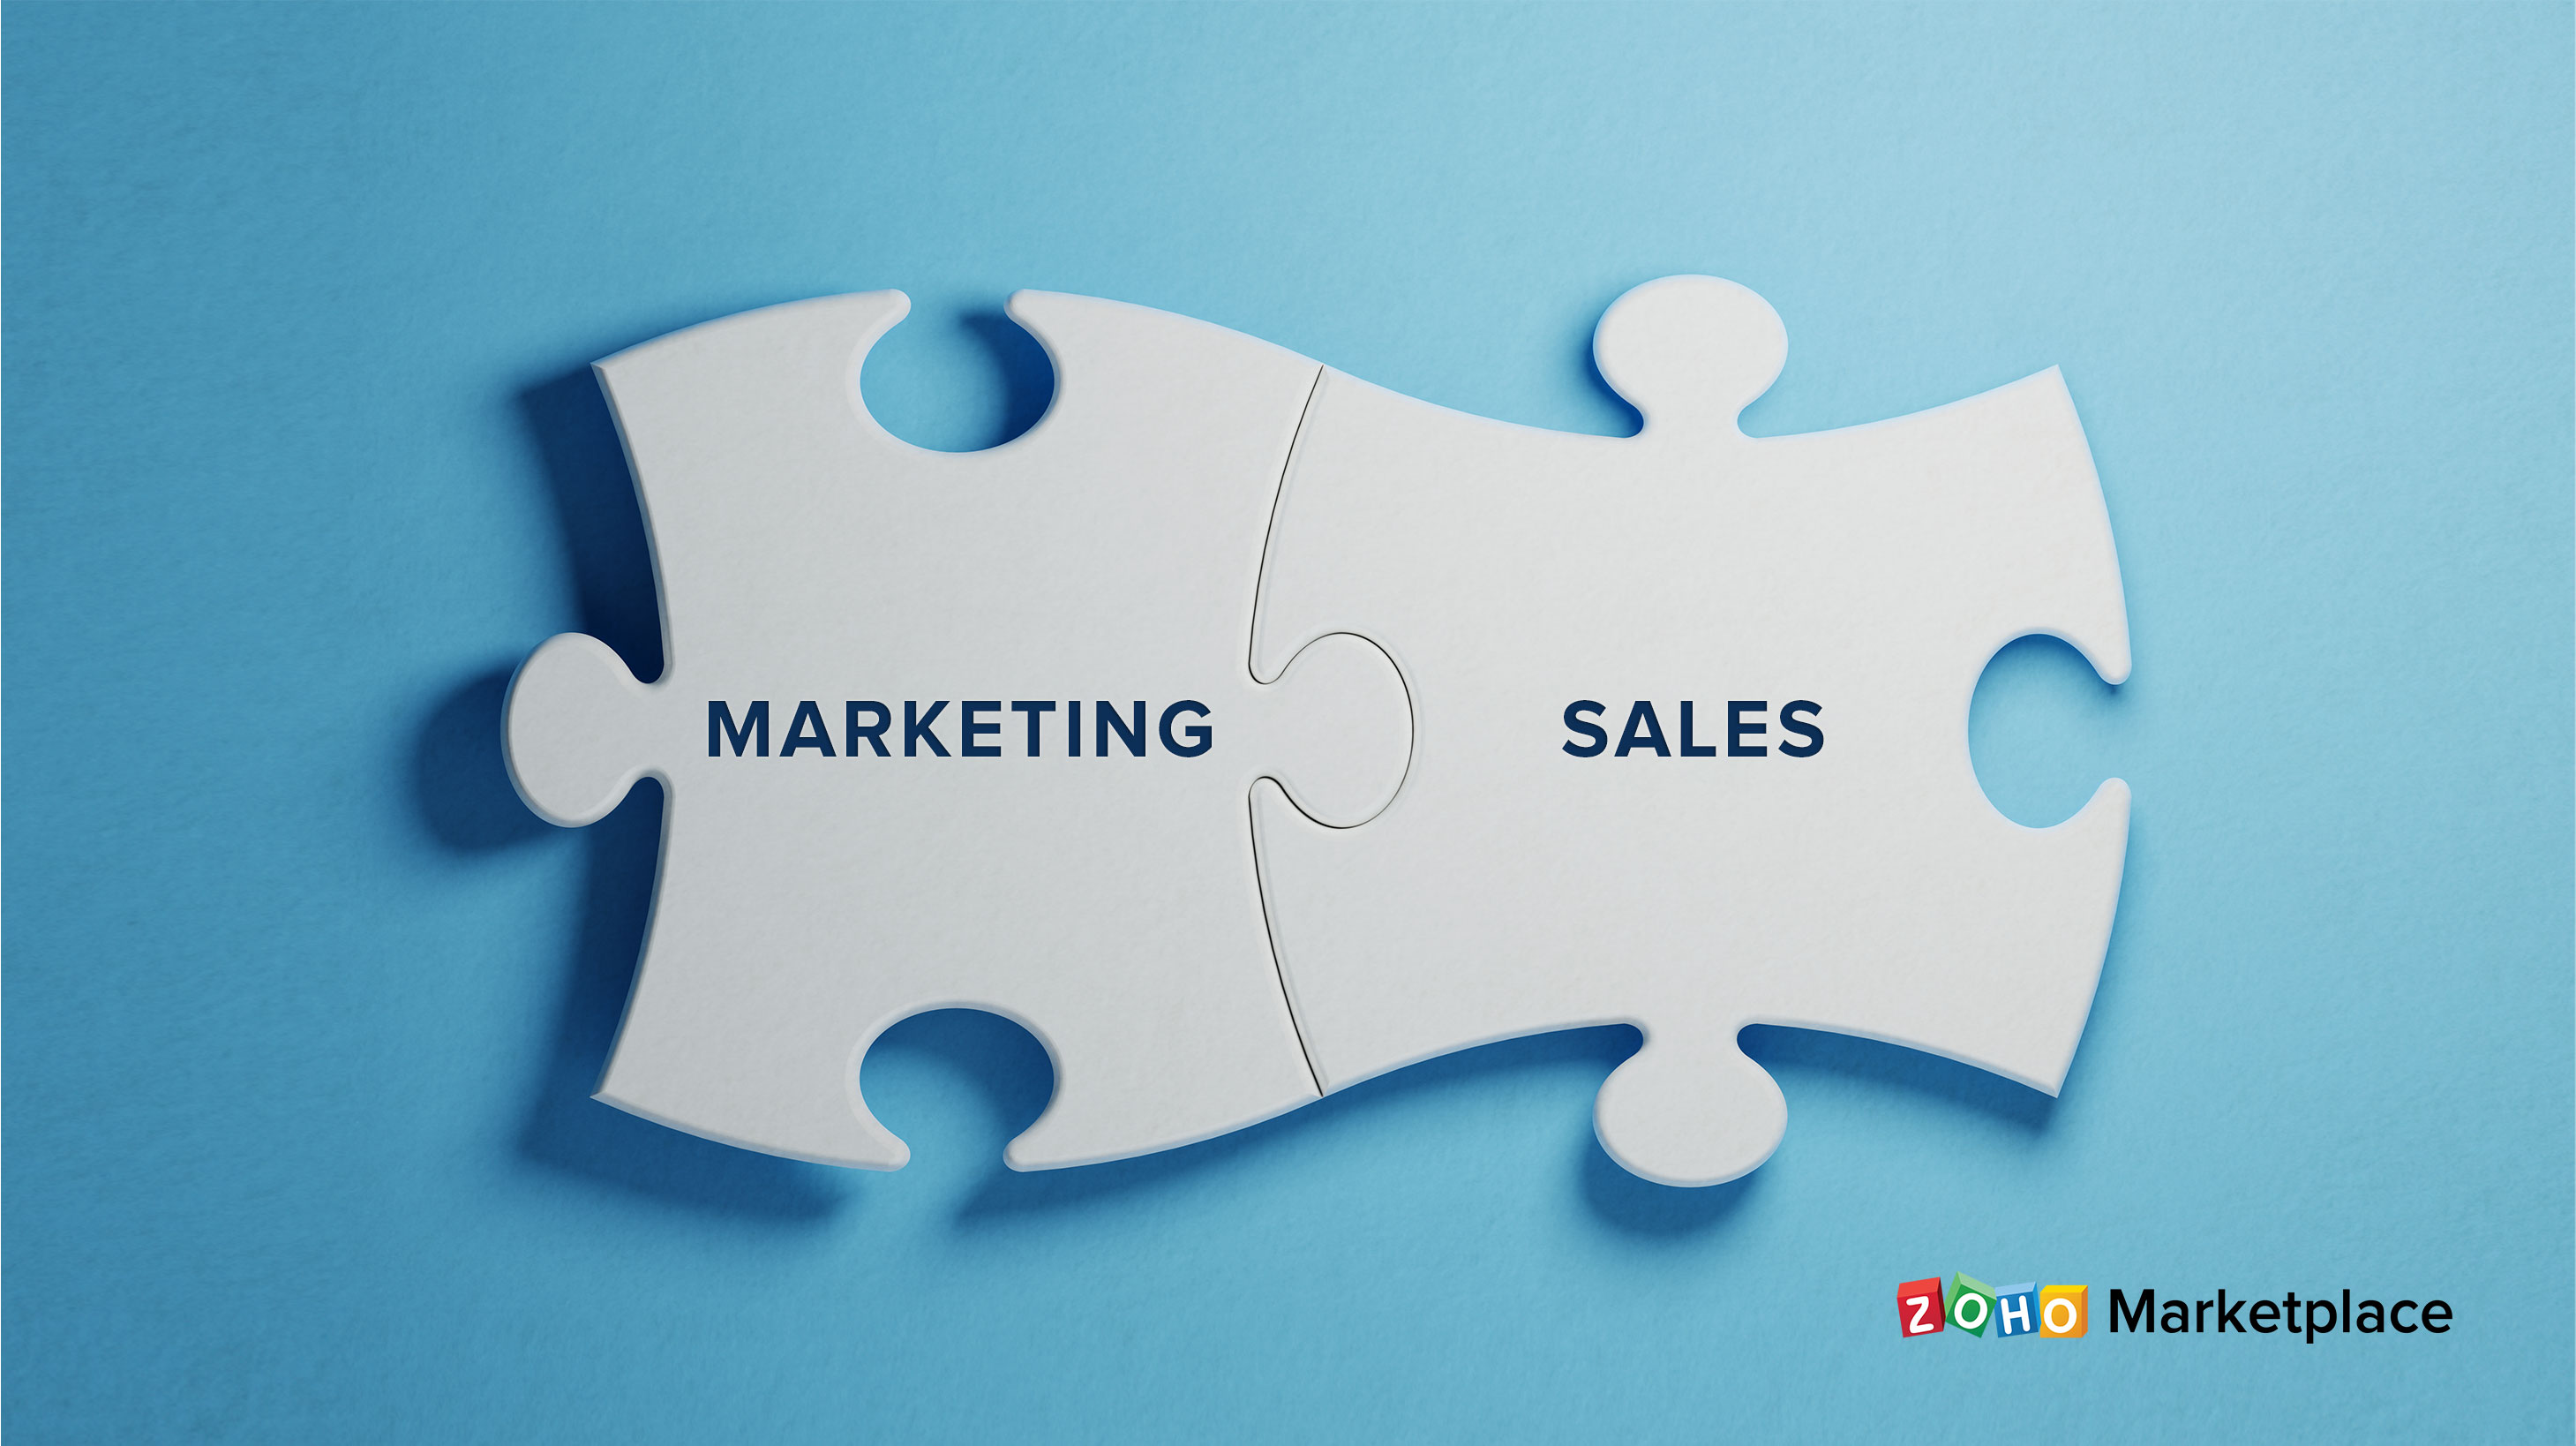 ProTips: 5 things you can do when you connect marketing and sales systems